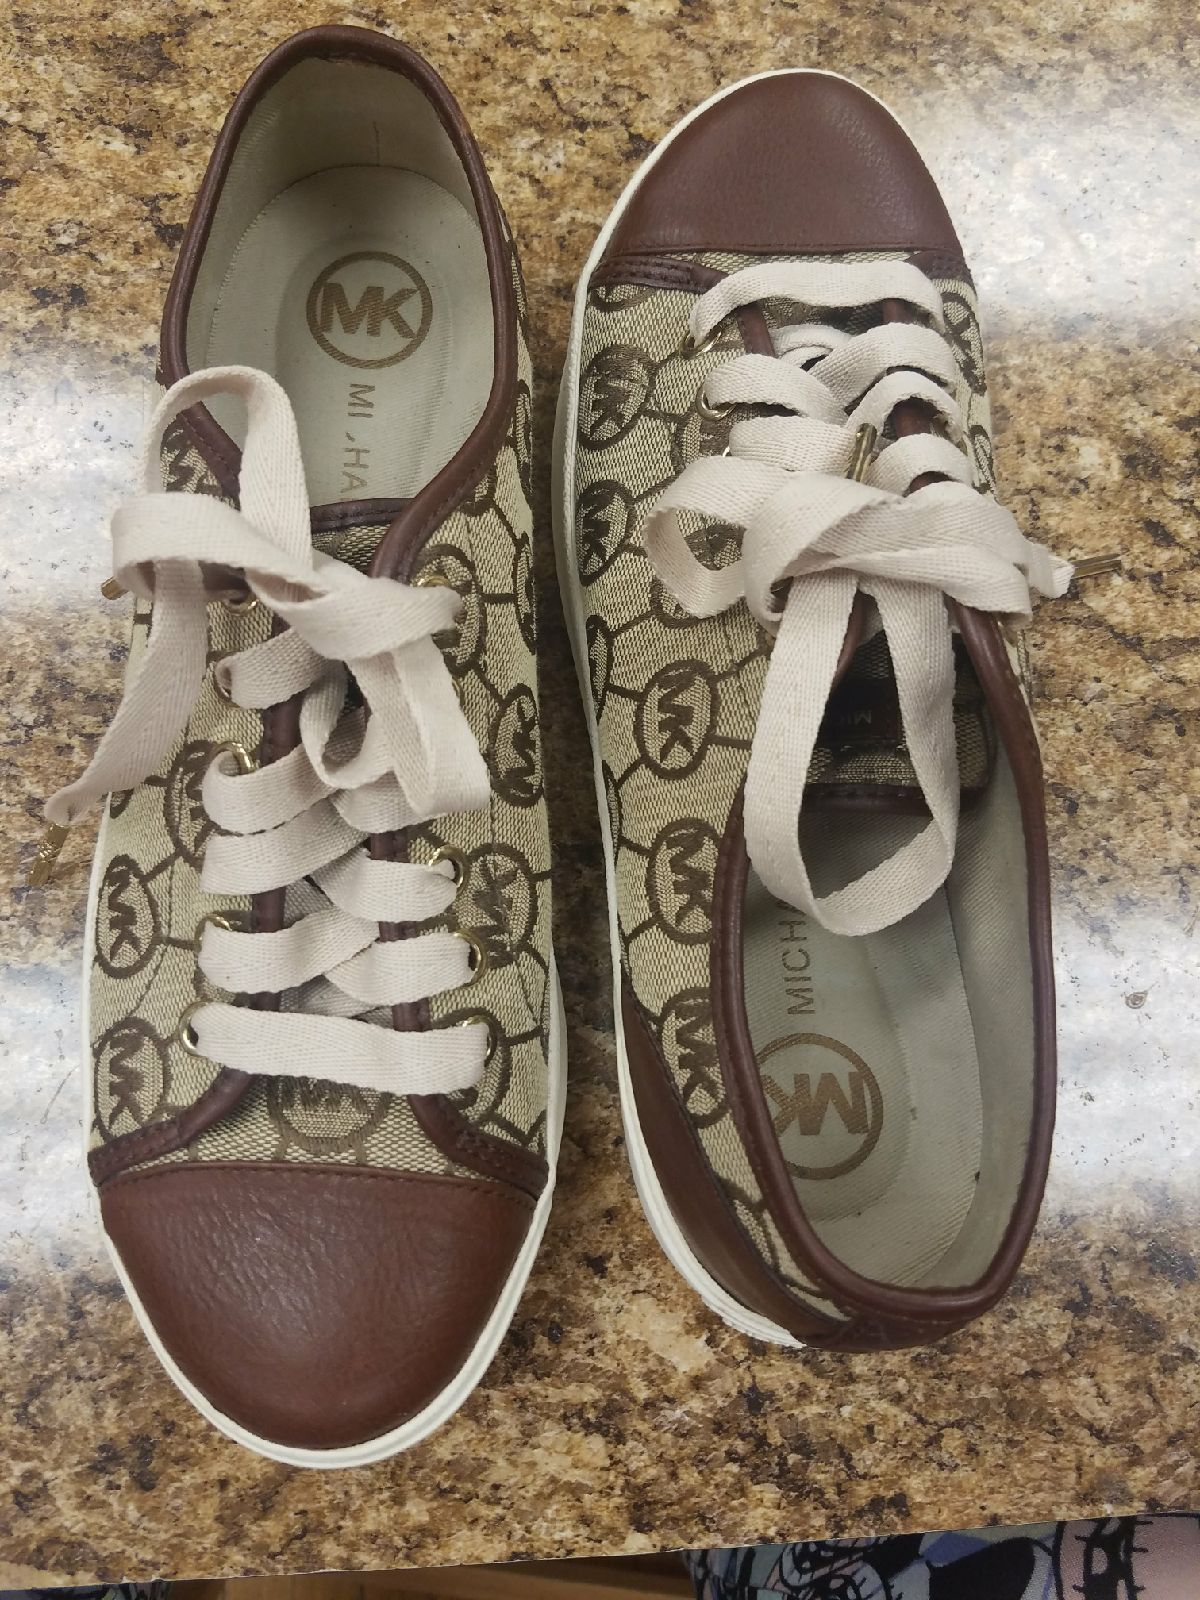 Micheal Kors size 7 1/2.  Brown and tan